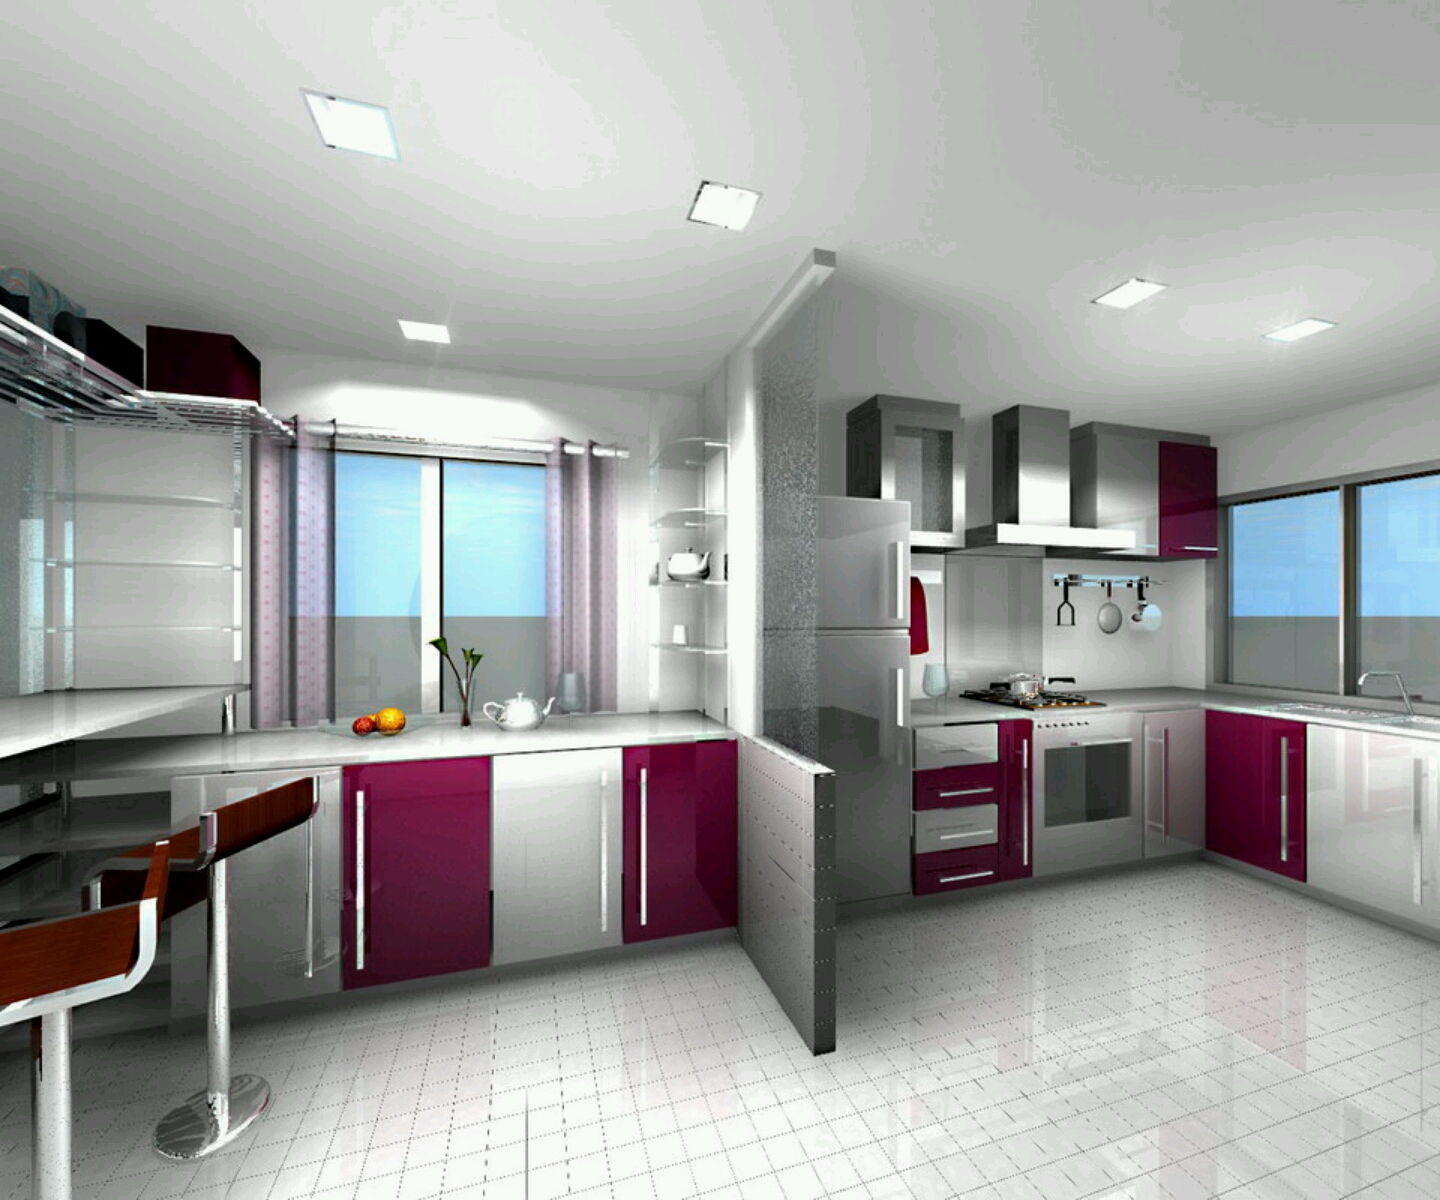 New home designs latest.: Modern homes ultra modern ... on Modern Kitchen Design  id=90391